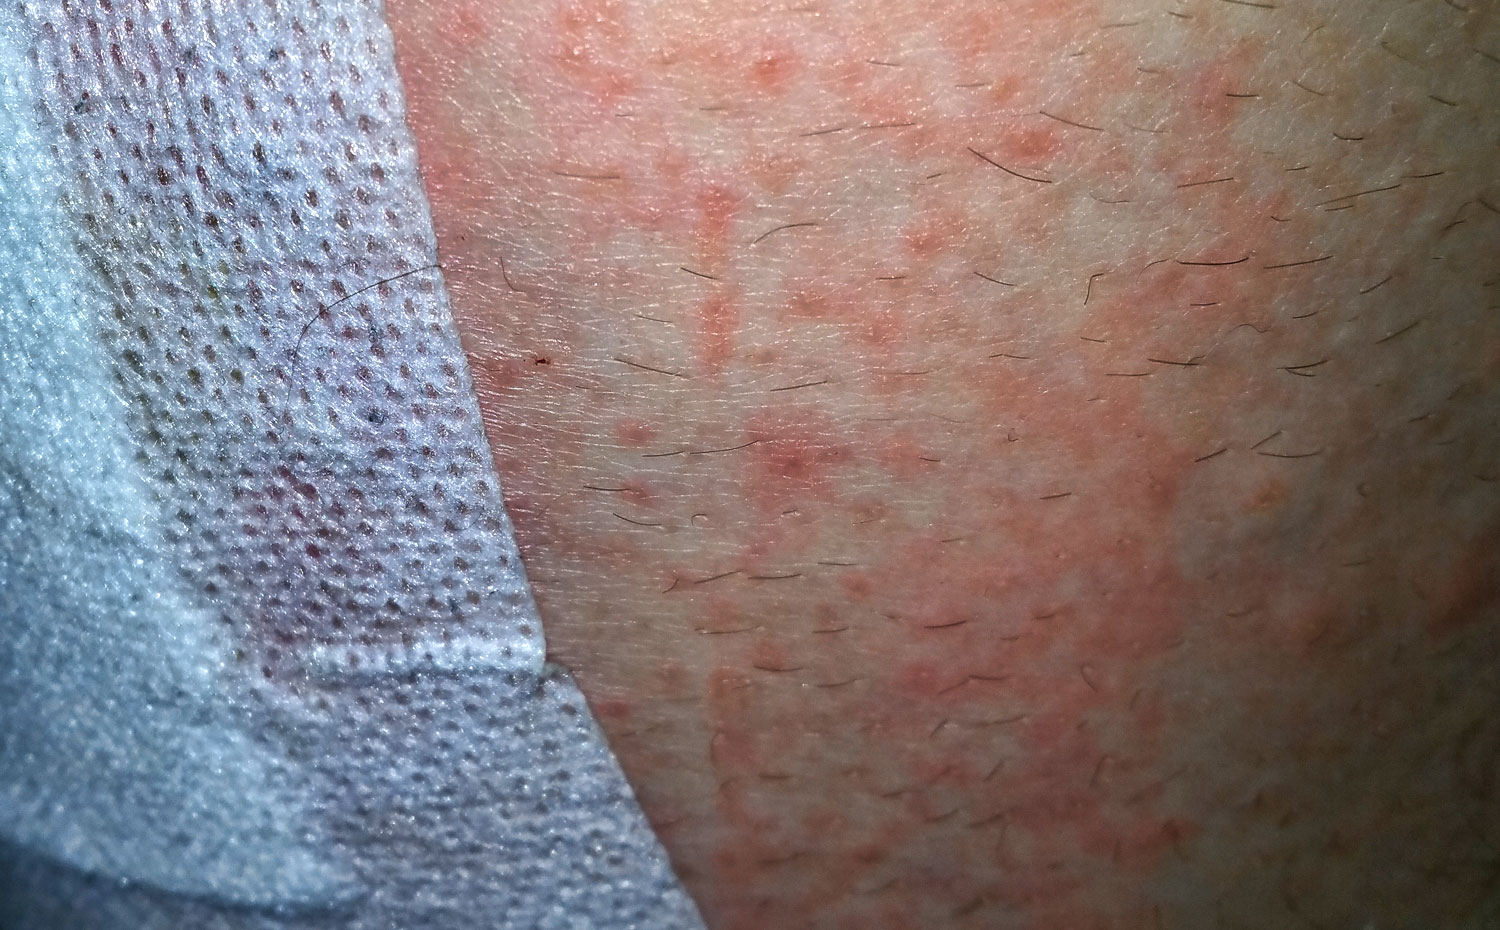 Possible Causes Of Hives